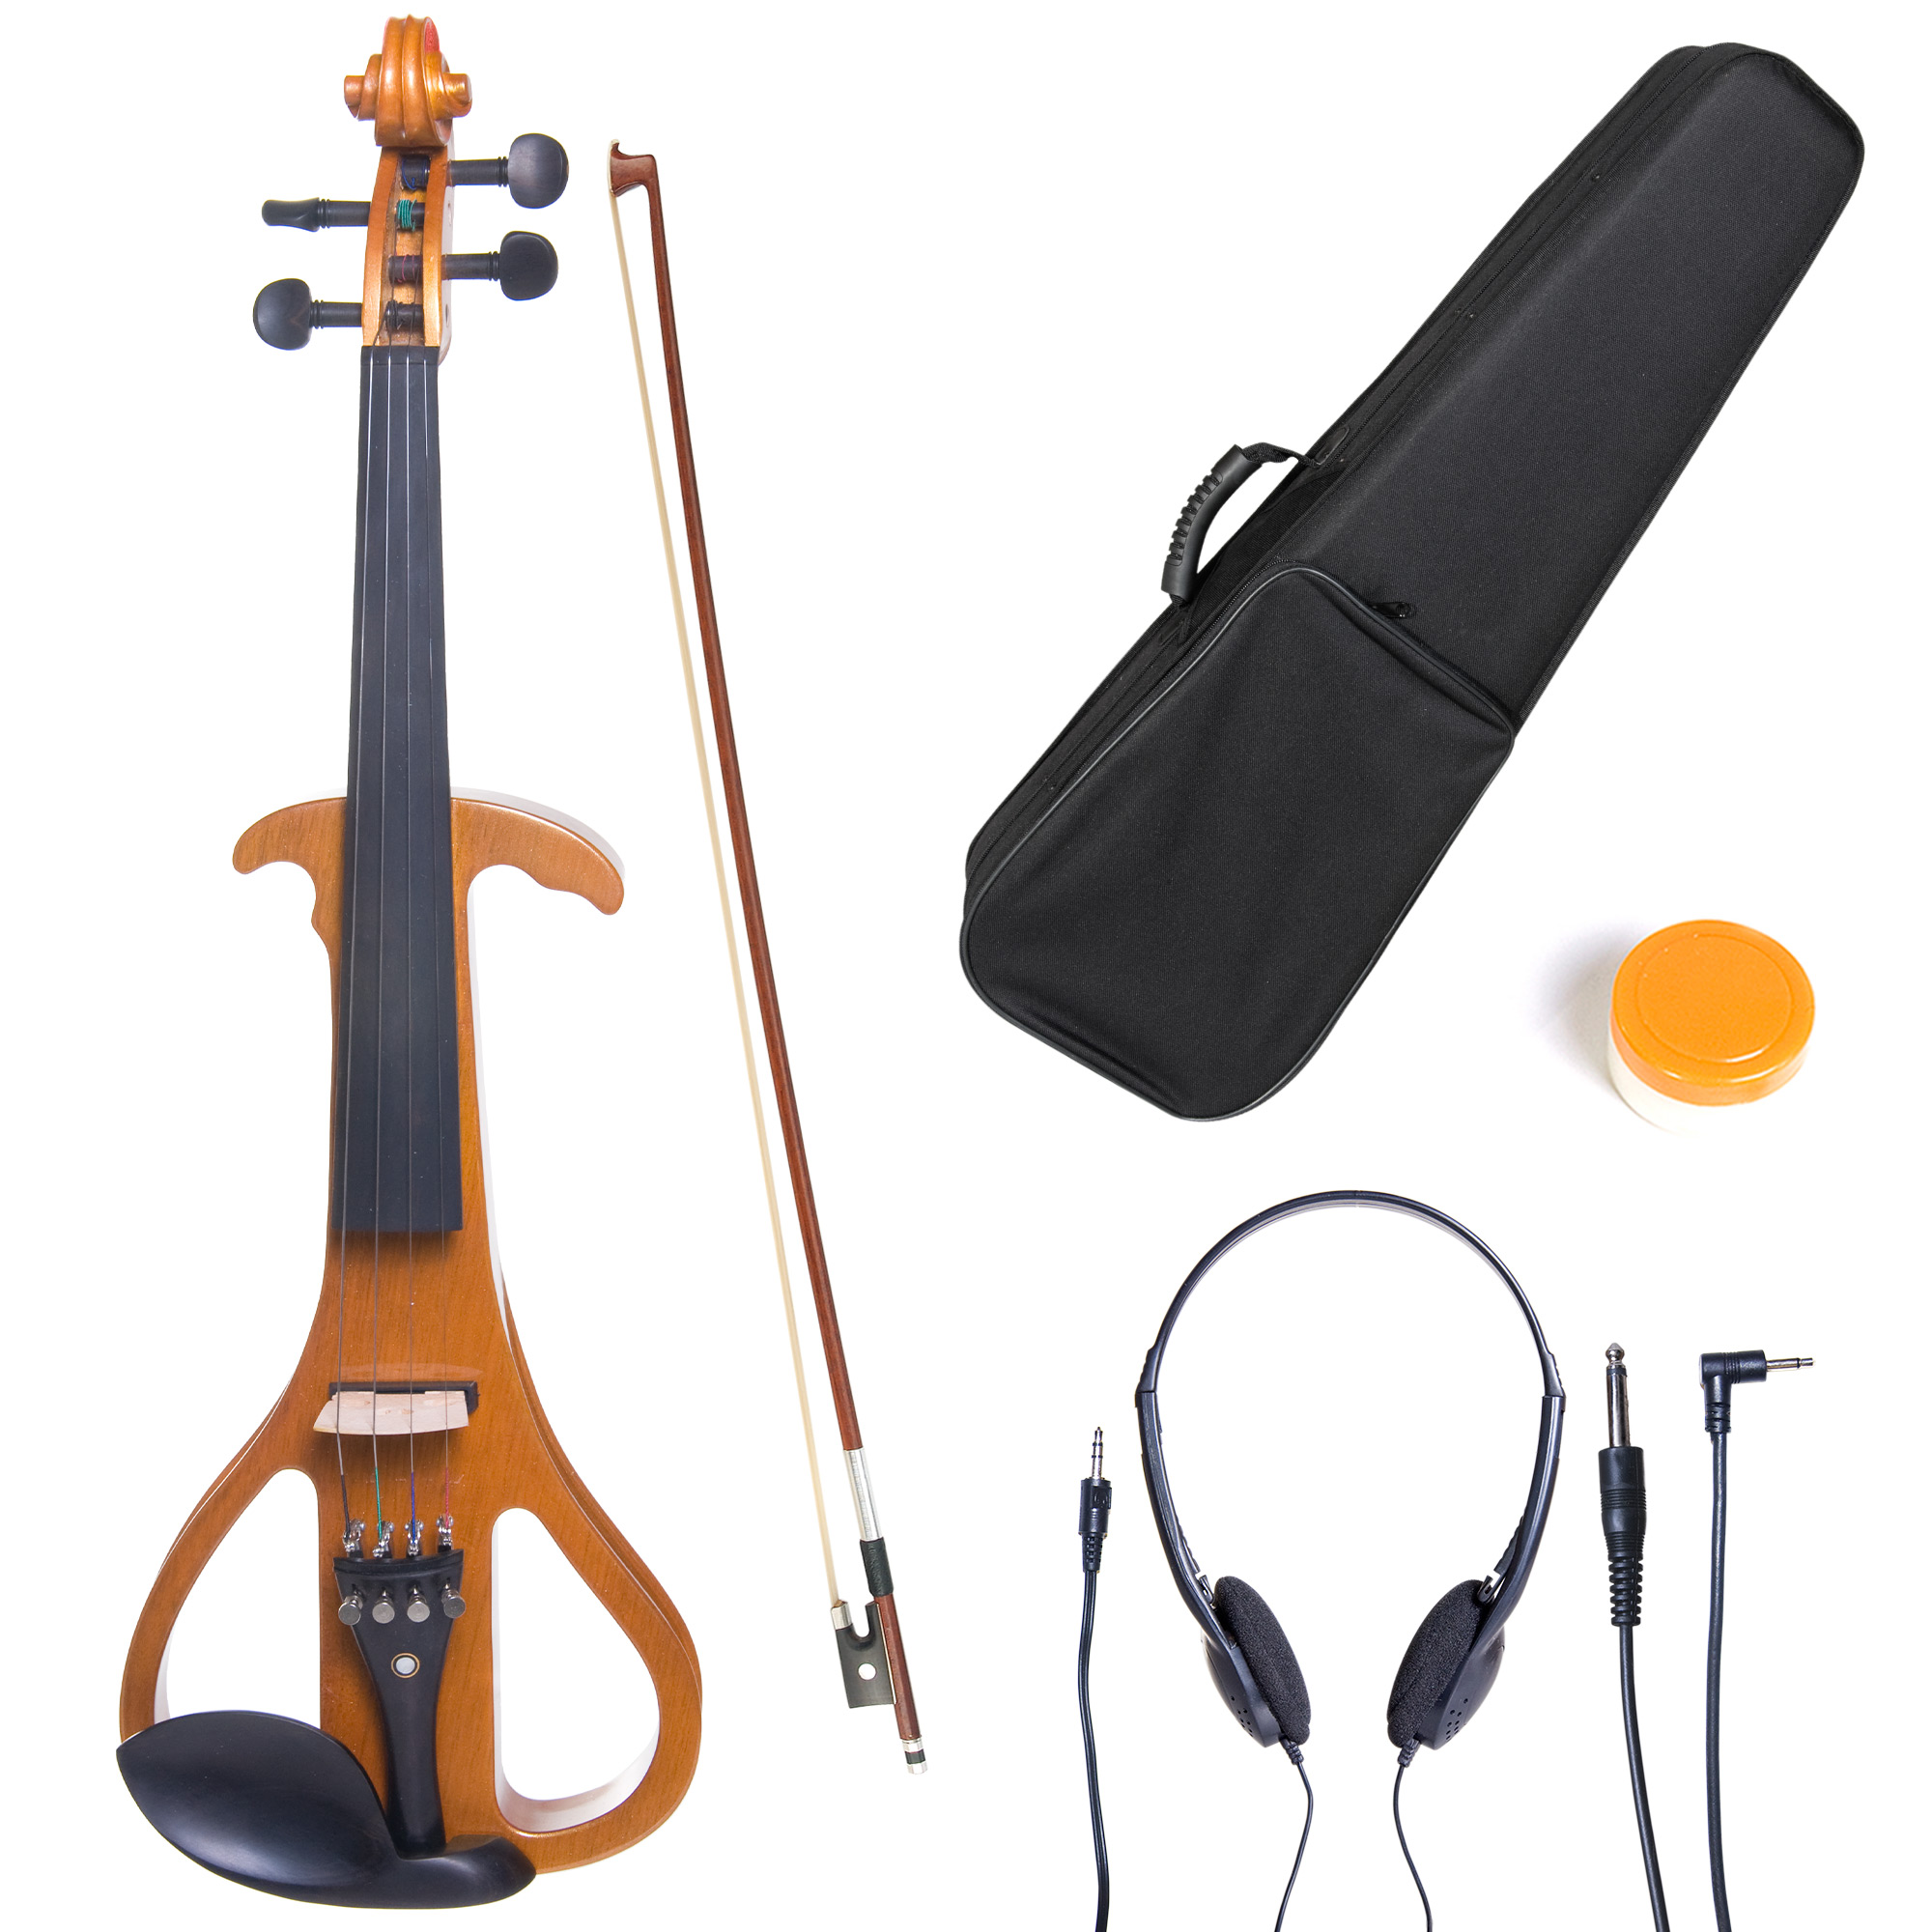 Cecilio 4/4 CEVN-4Y Solidwood Metallic Yellow Maple Electric/Silent Violin with Ebony Fittings-Full Size